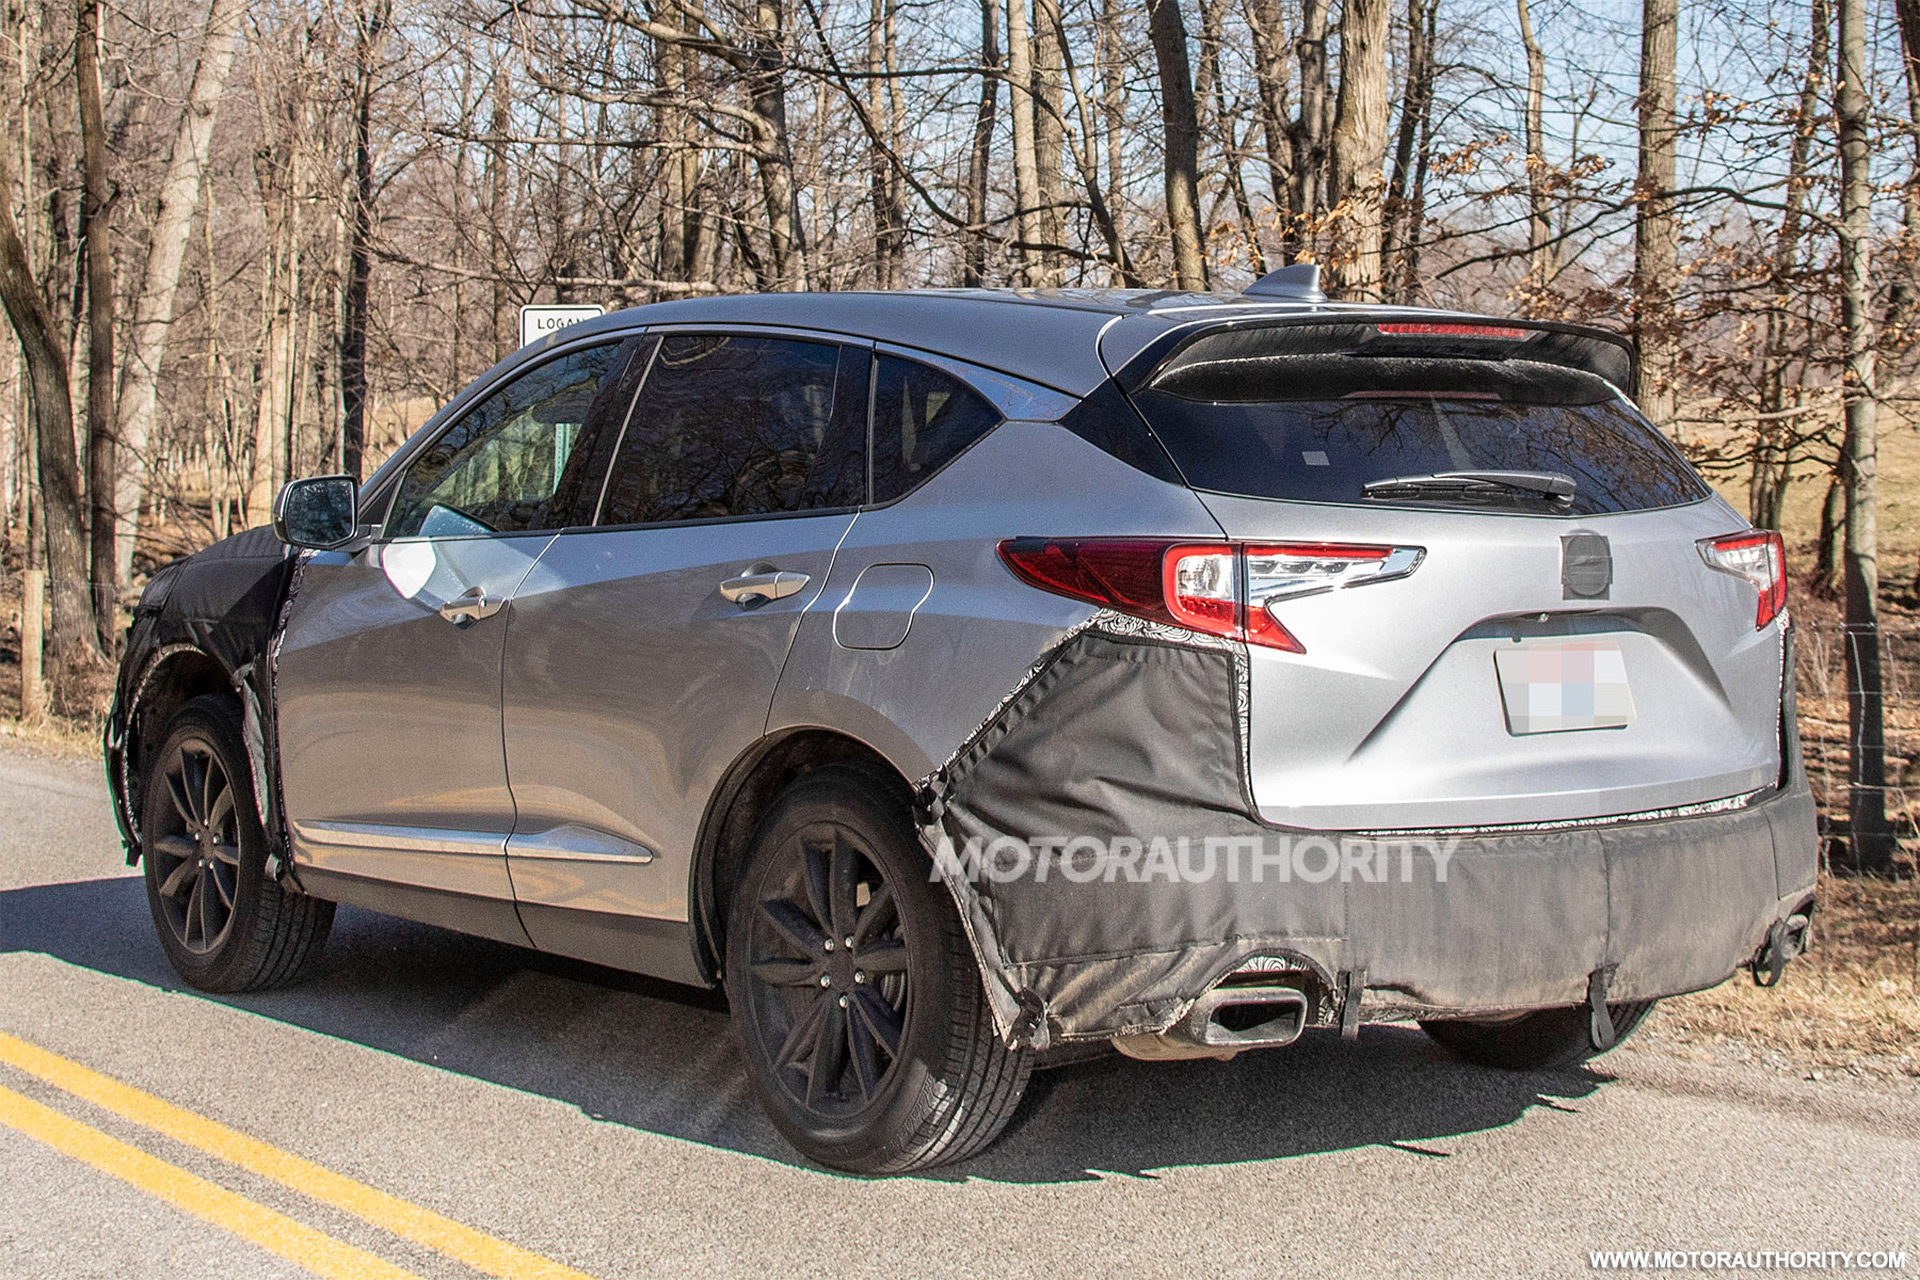 Spied: 2022 Acura RDX Prototype | Motor Authority